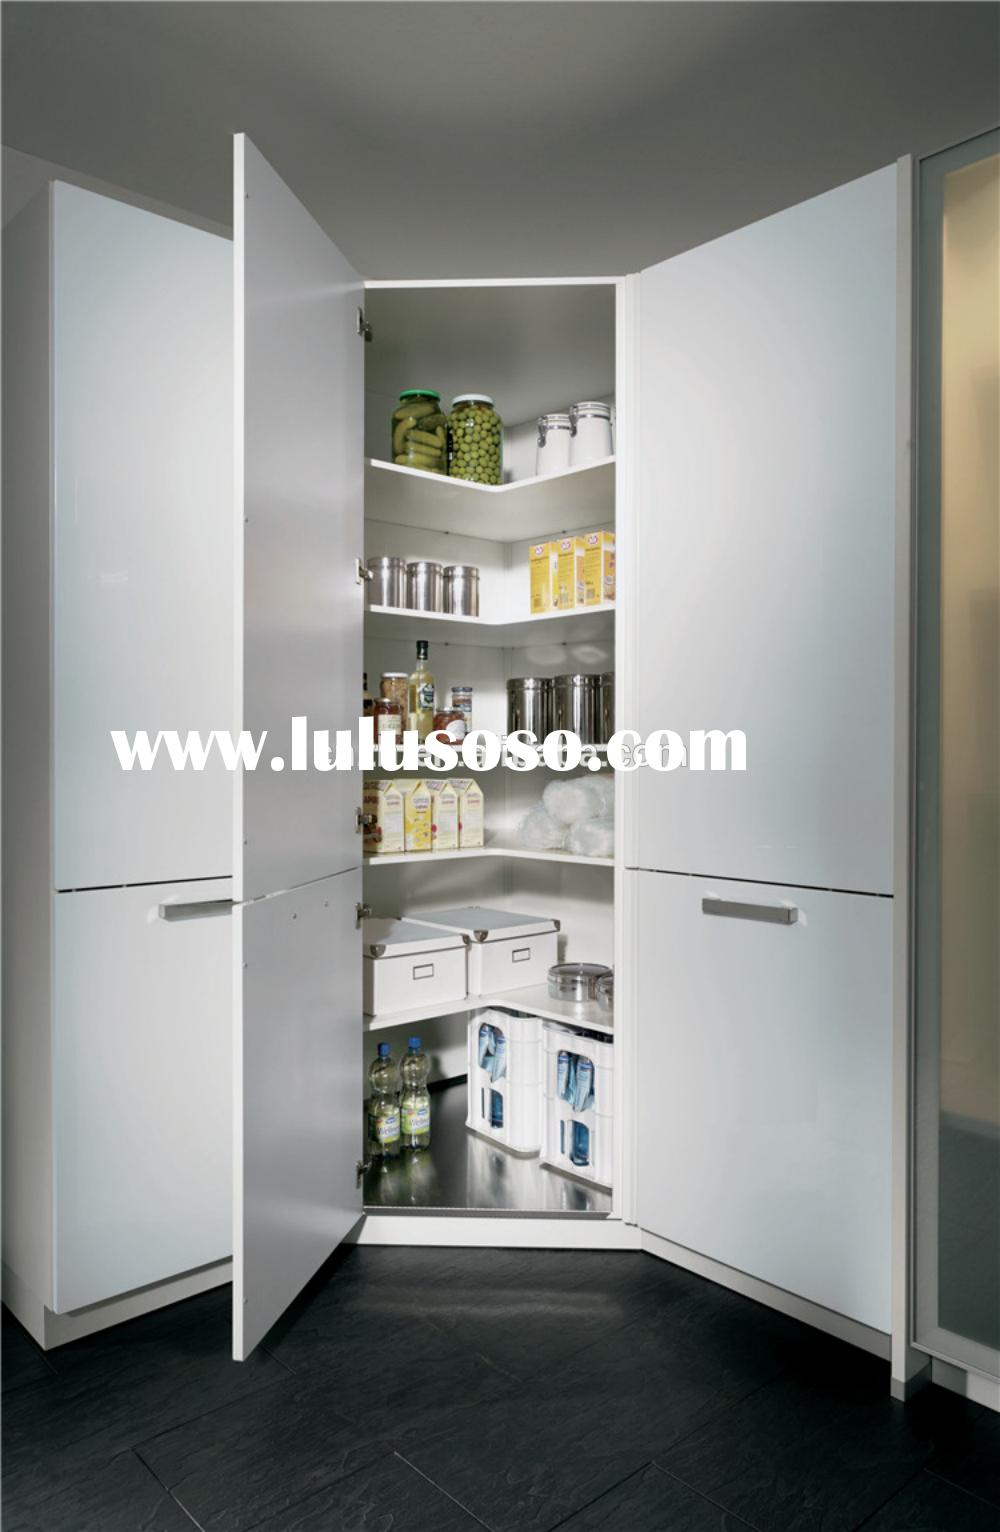 Household kitchen cabinet for food storage